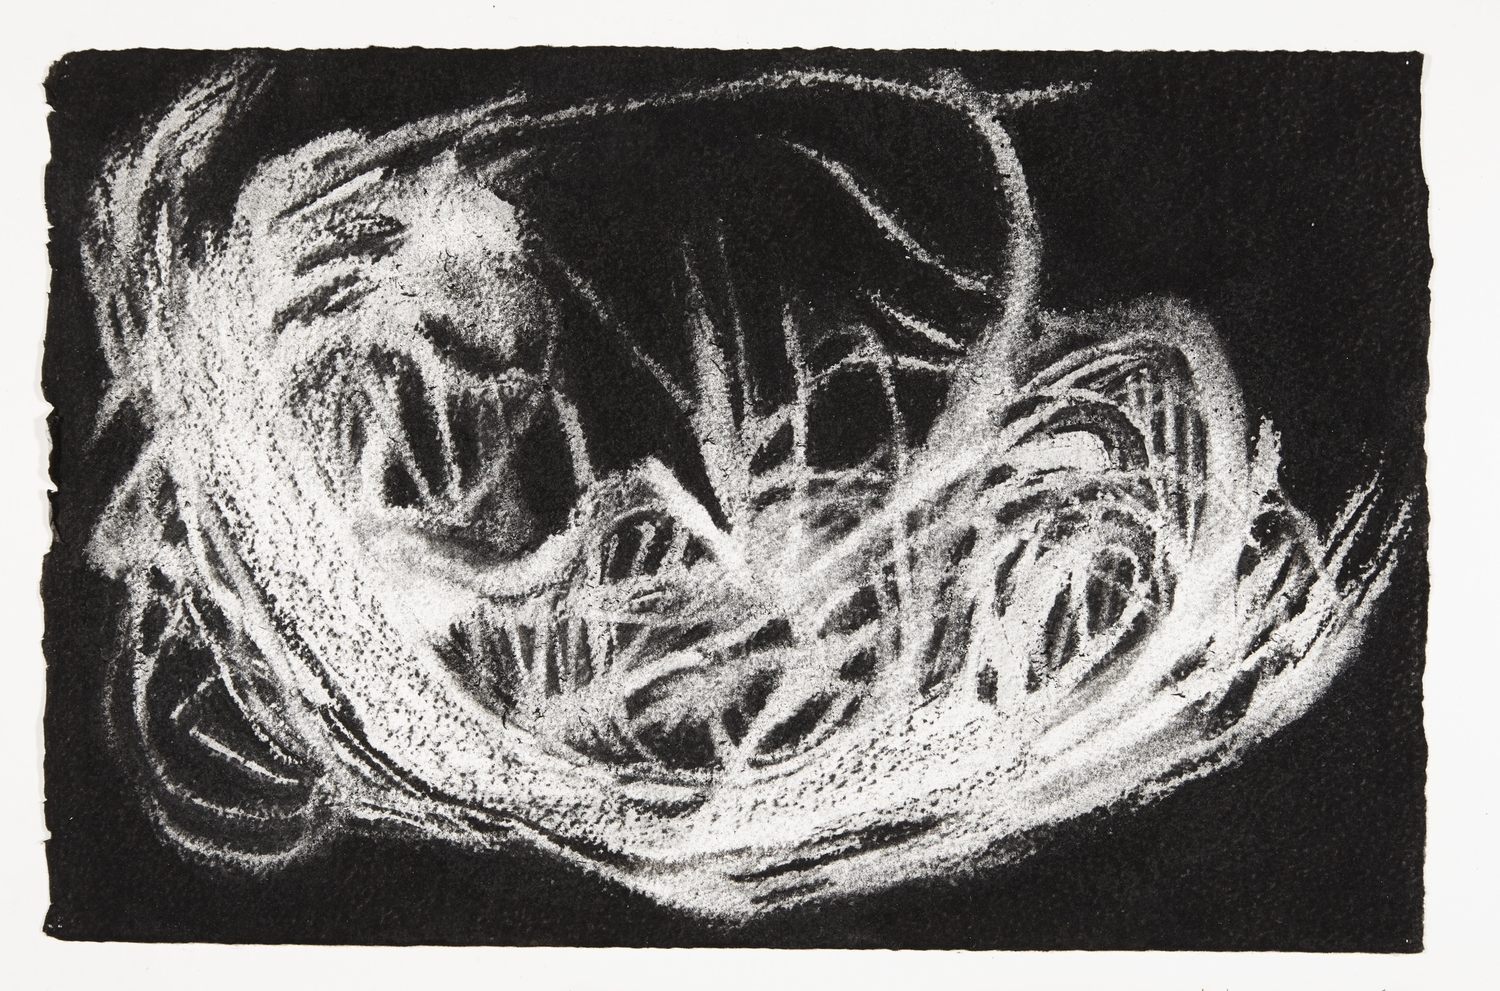 Nest, 2013-2014, charcoal on paper, 22x33cm